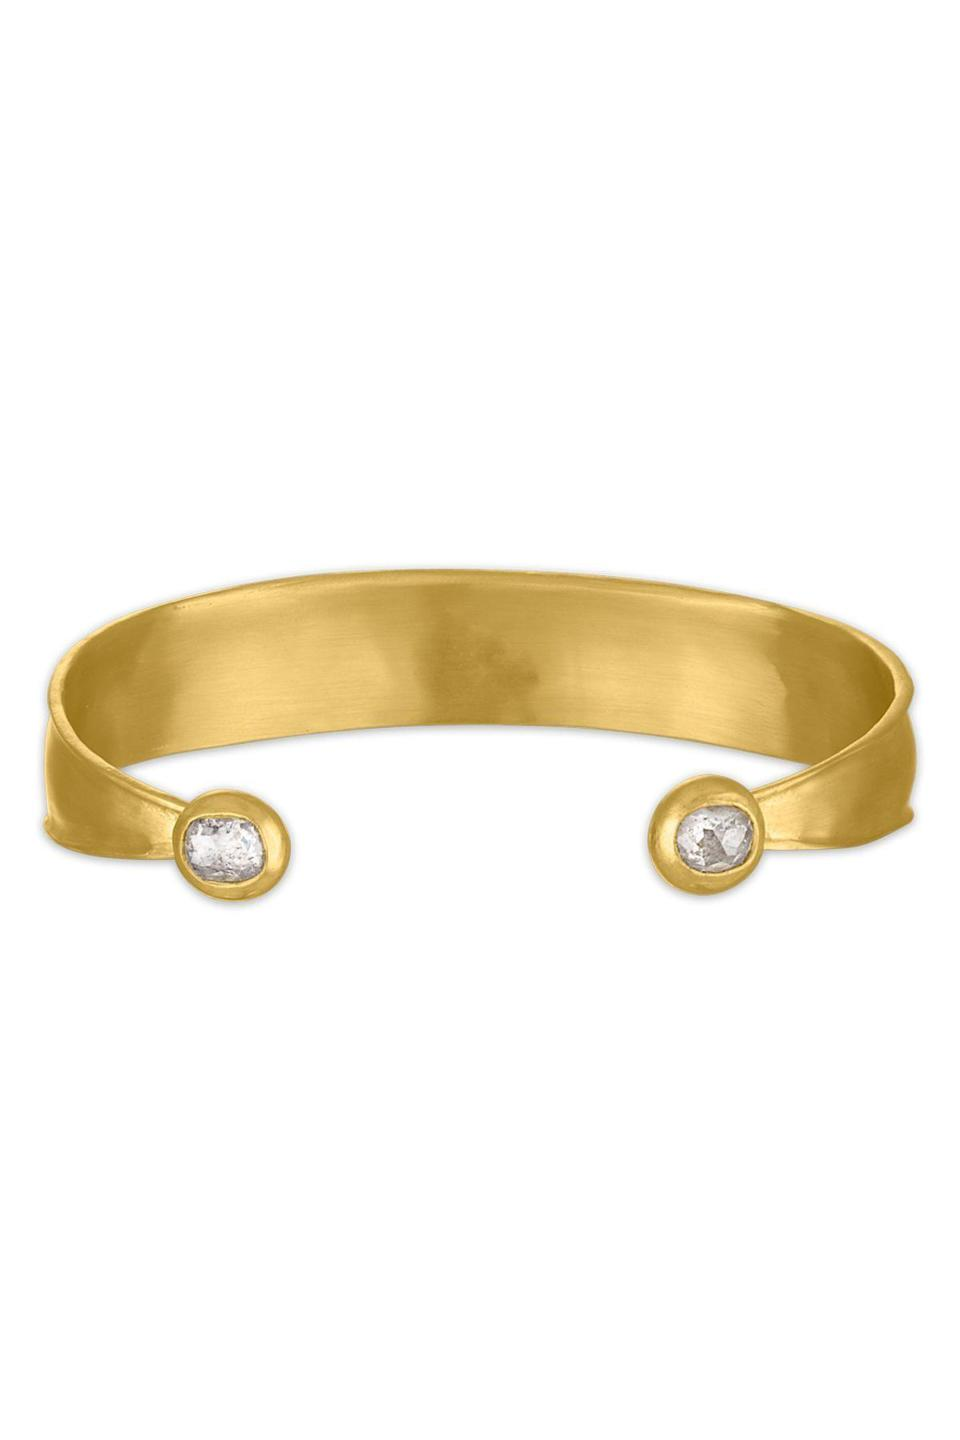 """<p><strong>Prounis</strong></p><p>prounisjewelry.com</p><p><a href=""""https://www.prounisjewelry.com/collections/bracelets/products/laurel-cuff-with-diamonds"""" rel=""""nofollow noopener"""" target=""""_blank"""" data-ylk=""""slk:Shop Now"""" class=""""link rapid-noclick-resp"""">Shop Now</a></p><p>This commanding gold cuff by Prounis will make any outfit chic. </p>"""